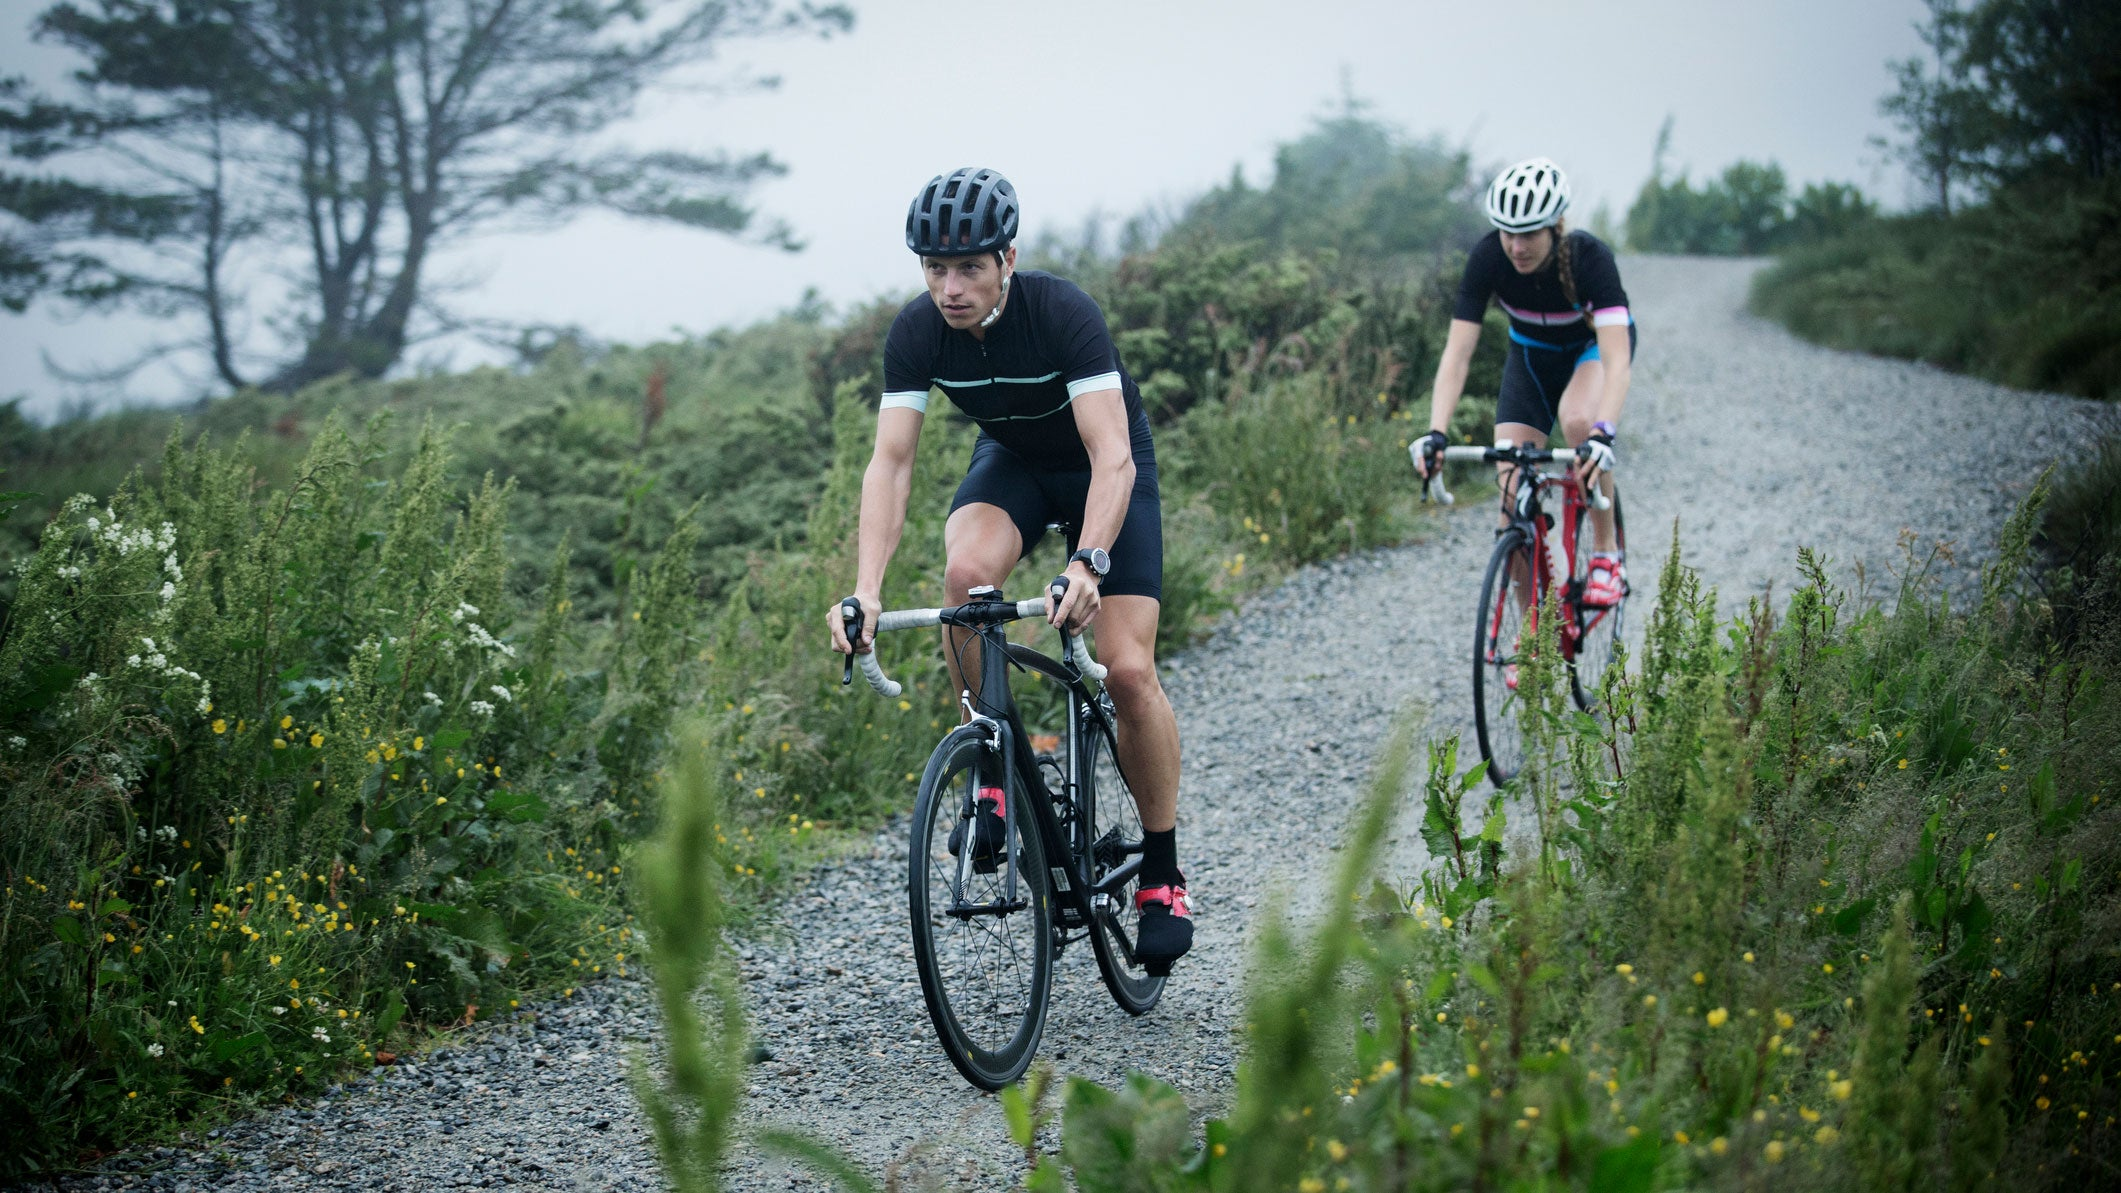 What Gravel Equipment and Gear Do You Need for Your First Gravel Ride? - Triathlete